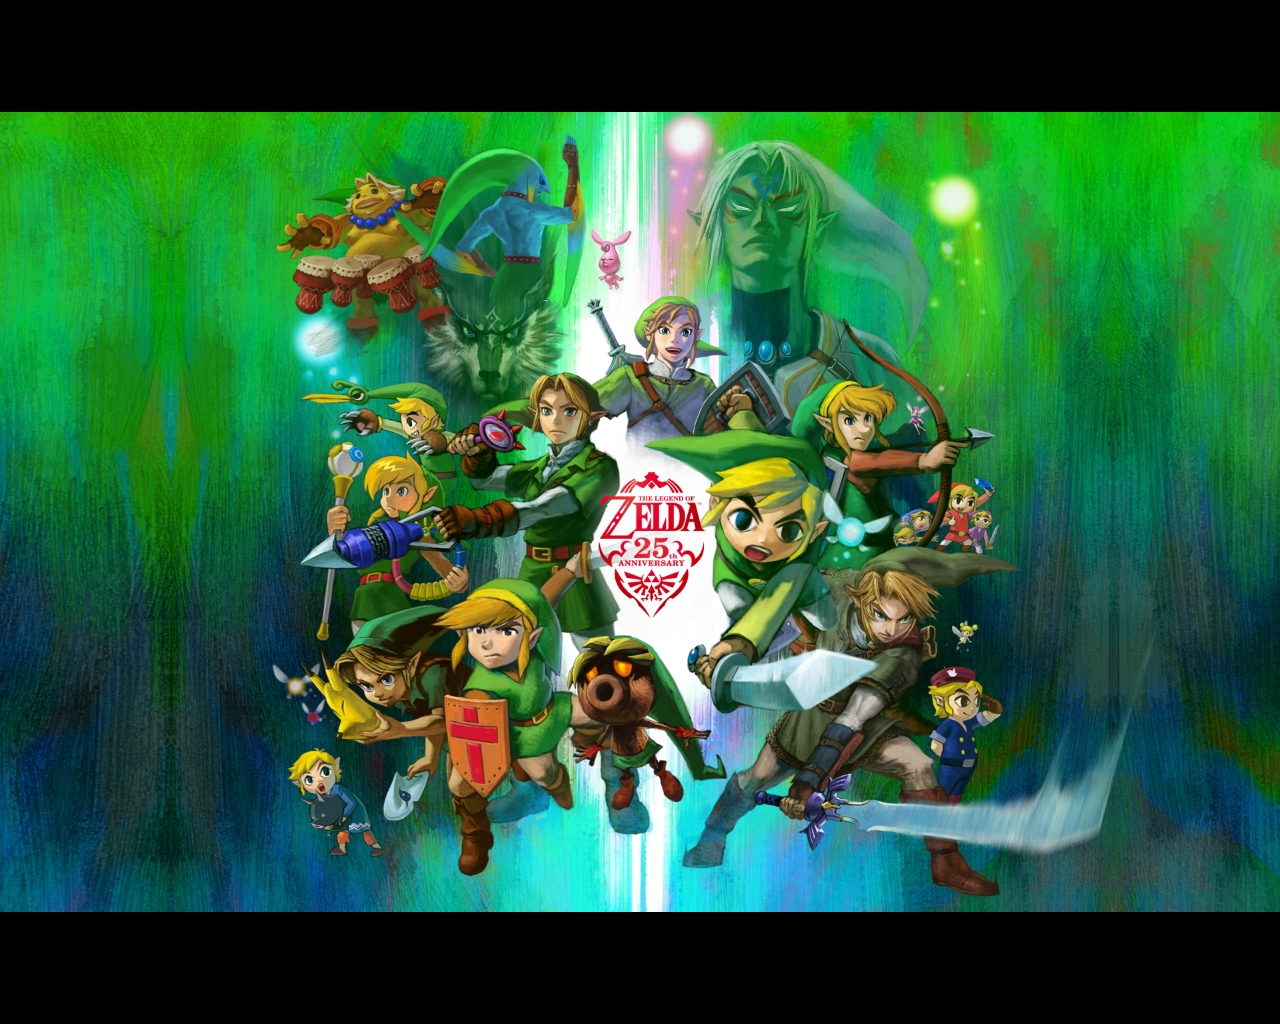 Group Of Zelda Wallpaper 25th